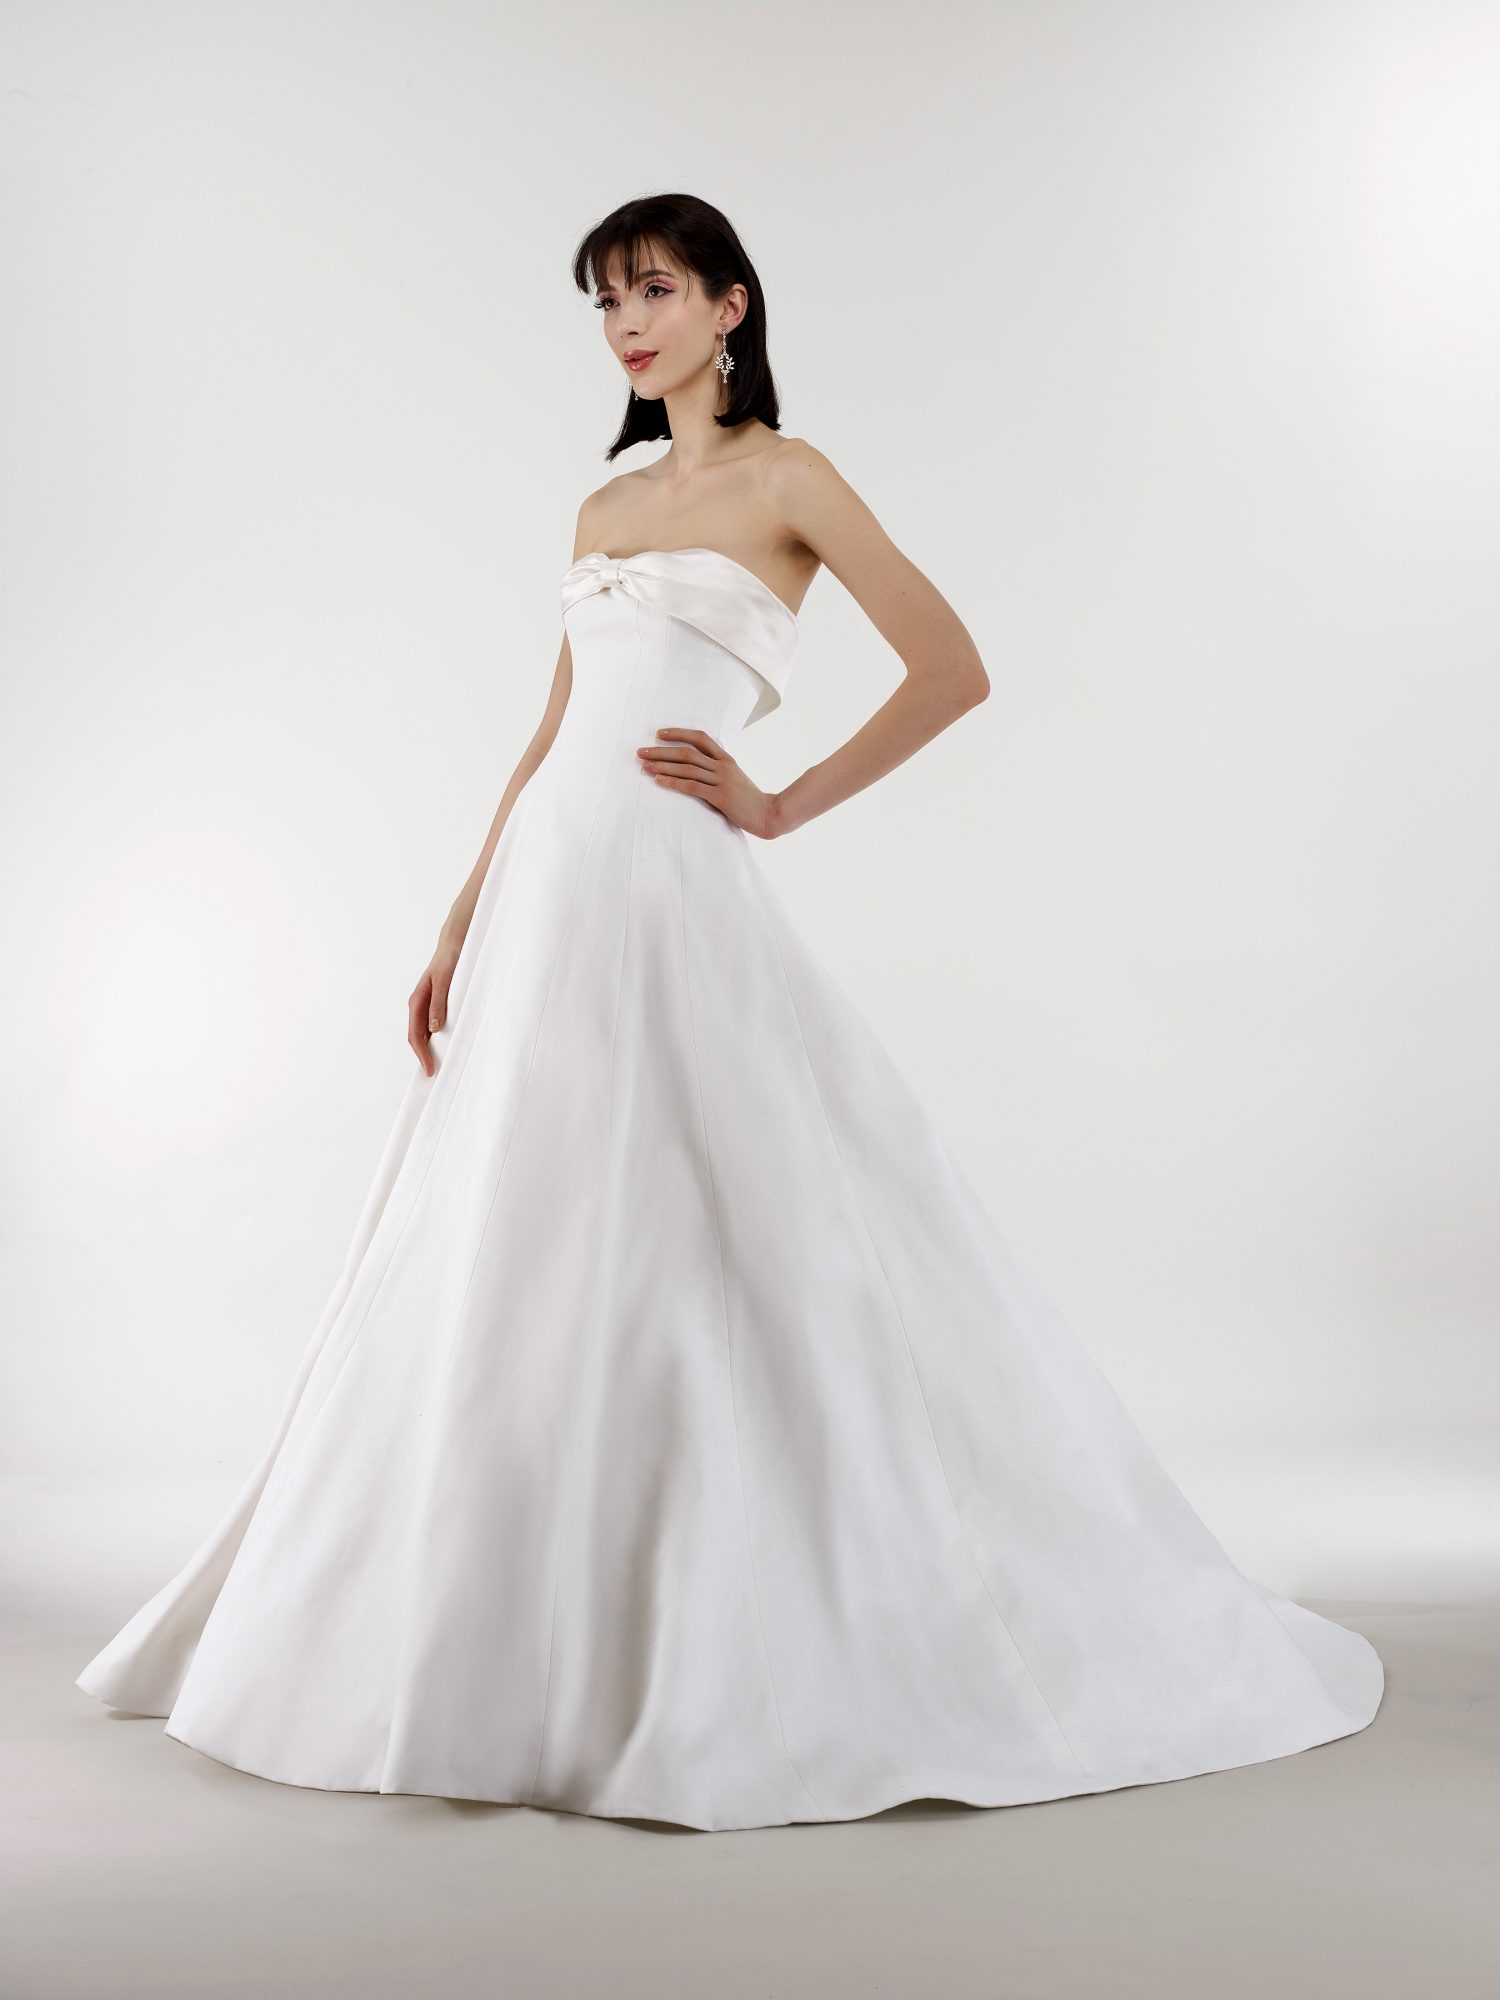 steven birnbaum bridal wedding dress spring 2019 strapless ribbon ballgown